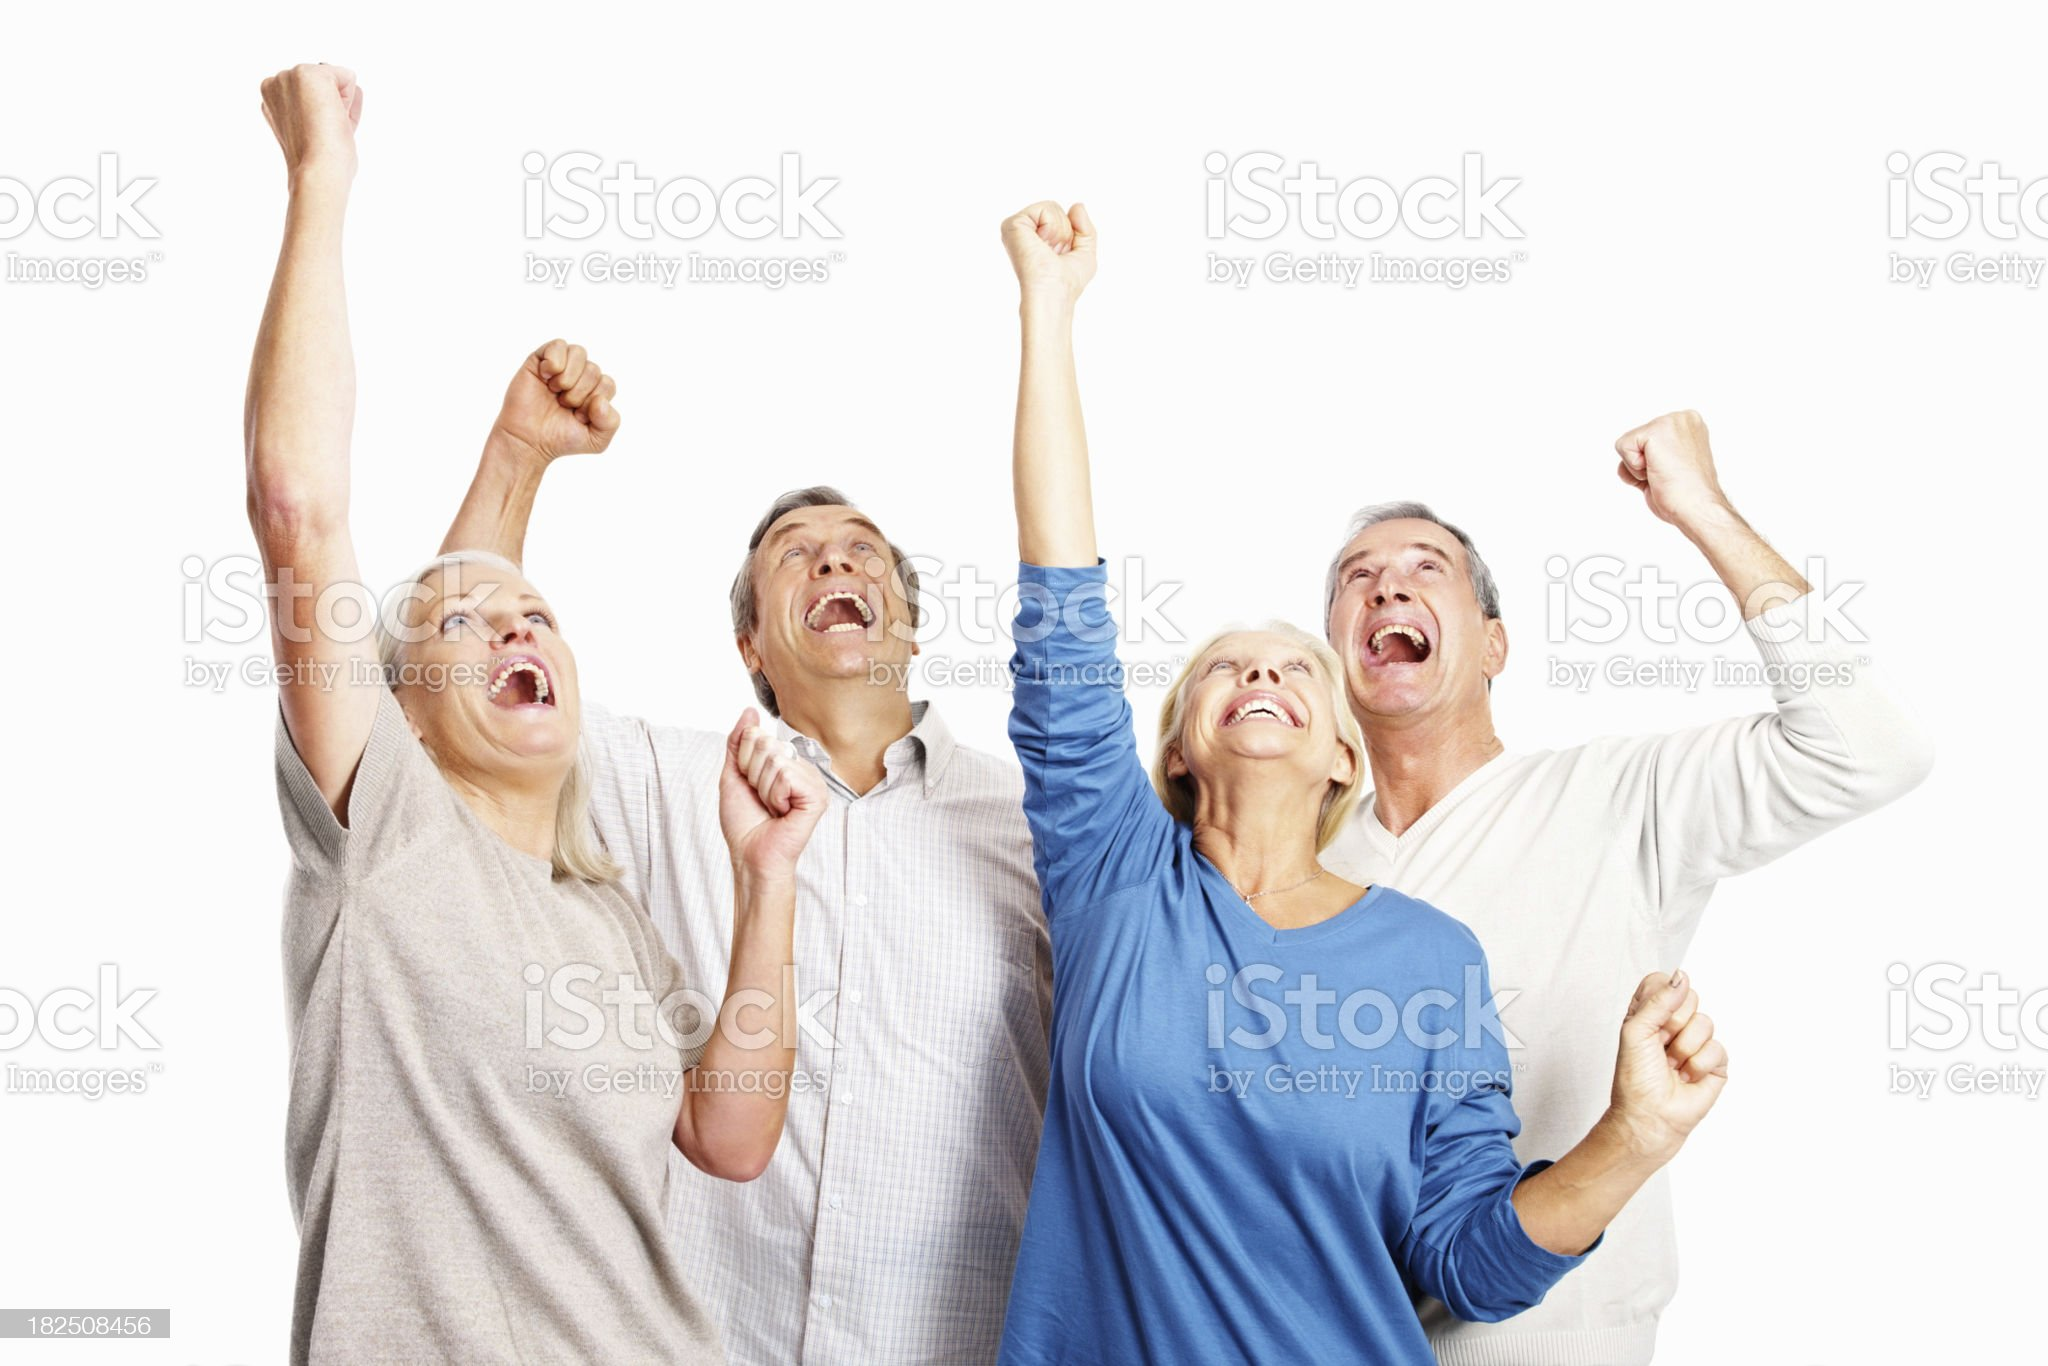 Excited old people raising hands in joy over white royalty-free stock photo